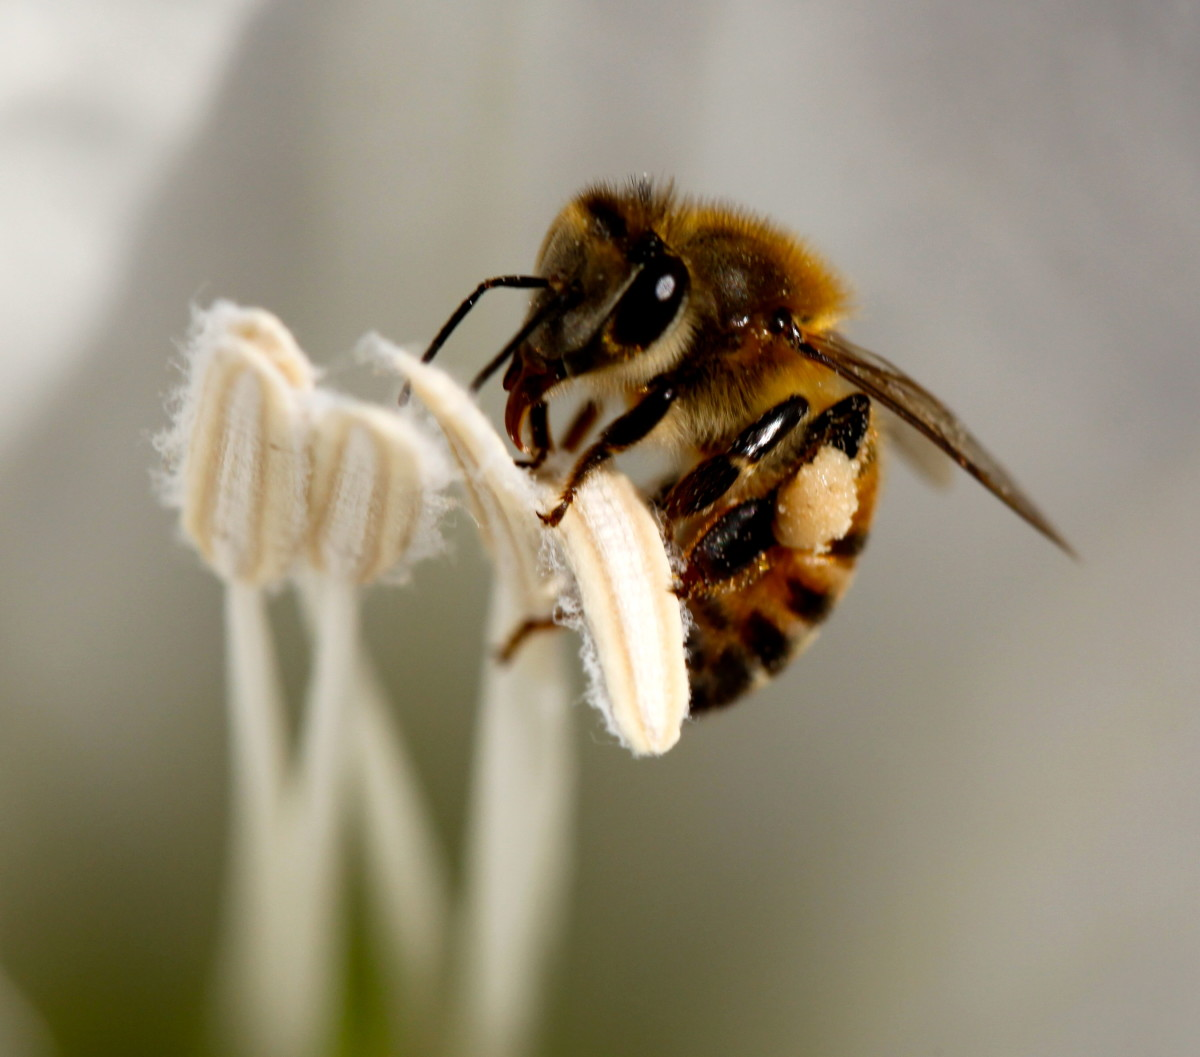 Some bees prefer one type of crop over another. It's important to protect all species of bees.